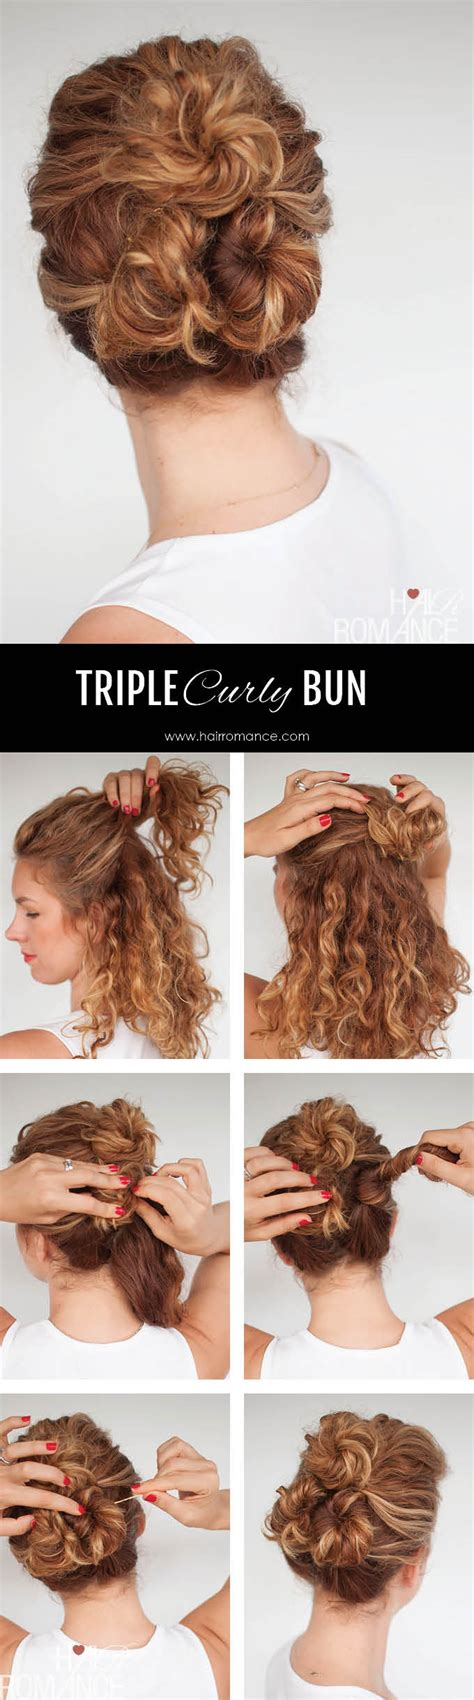 everyday hairstyles for curly thick hair easy everyday curly hairstyle tutorials the curly triple bun